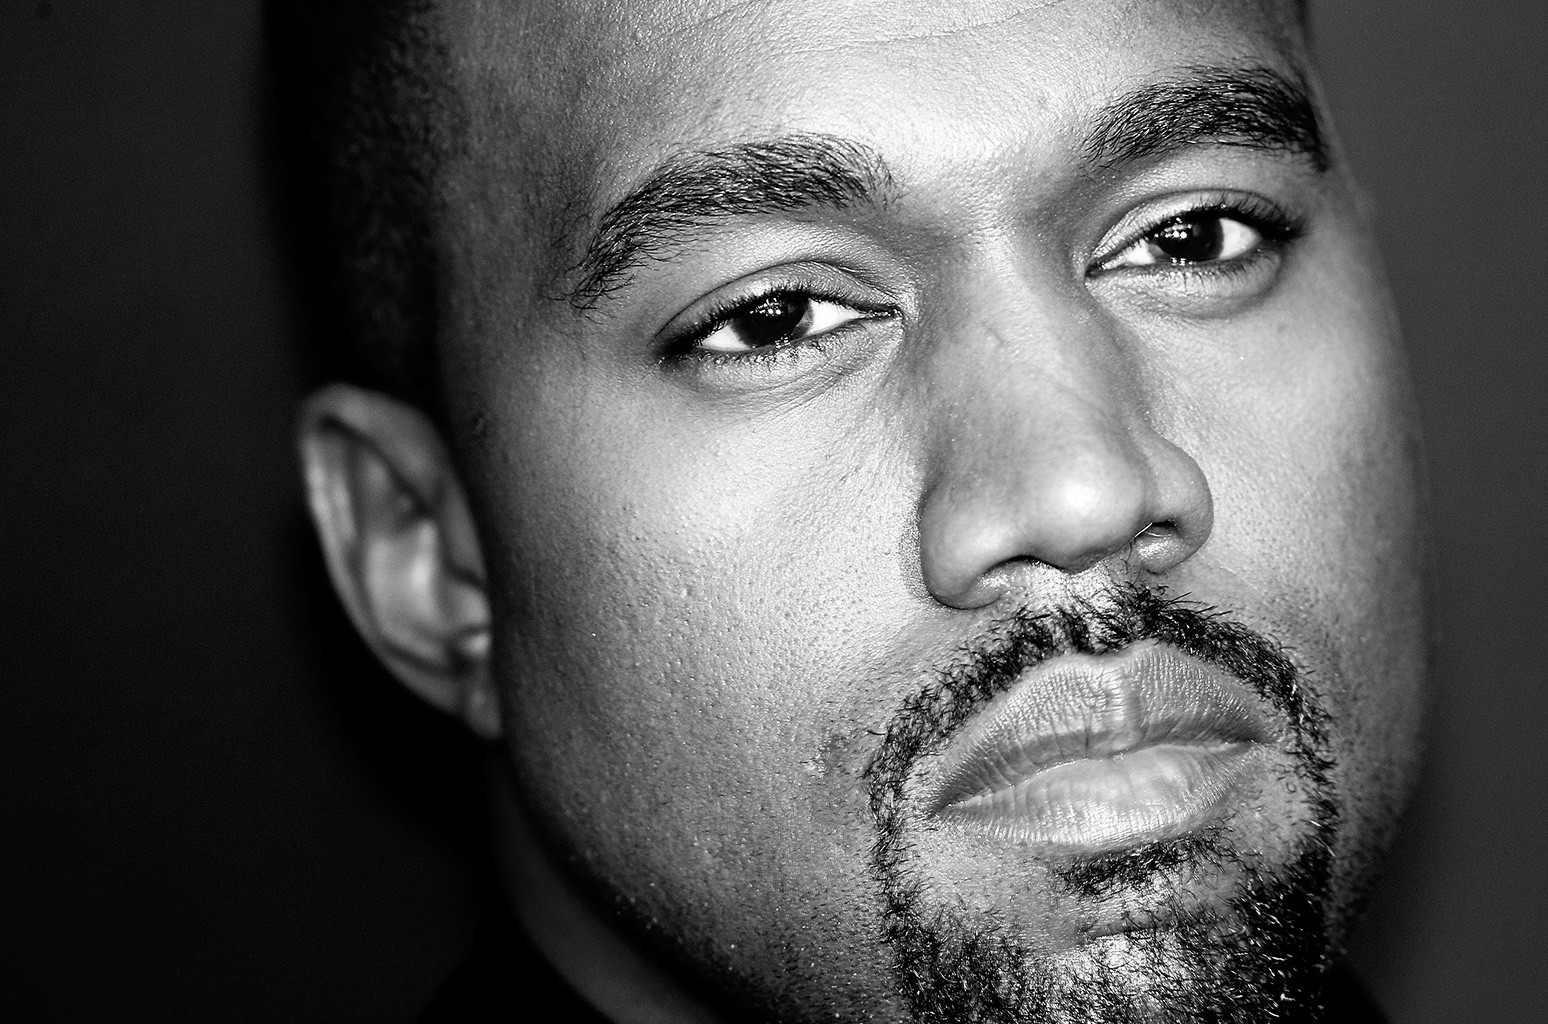 BET Honoree Kanye West attends the 2015 BET Honors at the Warner Theatre on Jan. 24, 2015 in Washington, DC.